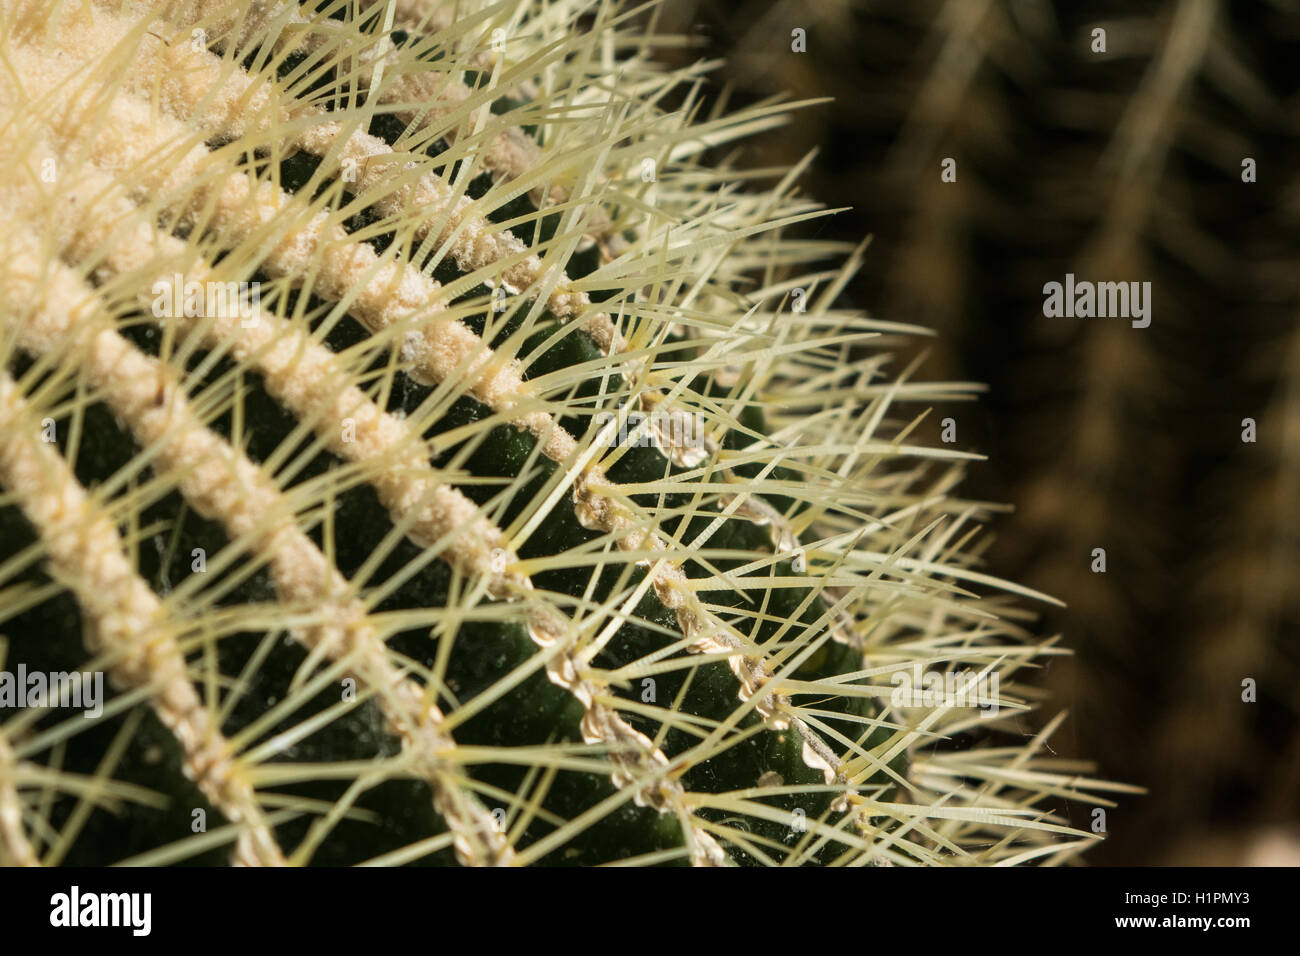 Close up of Cactus spines - Stock Image